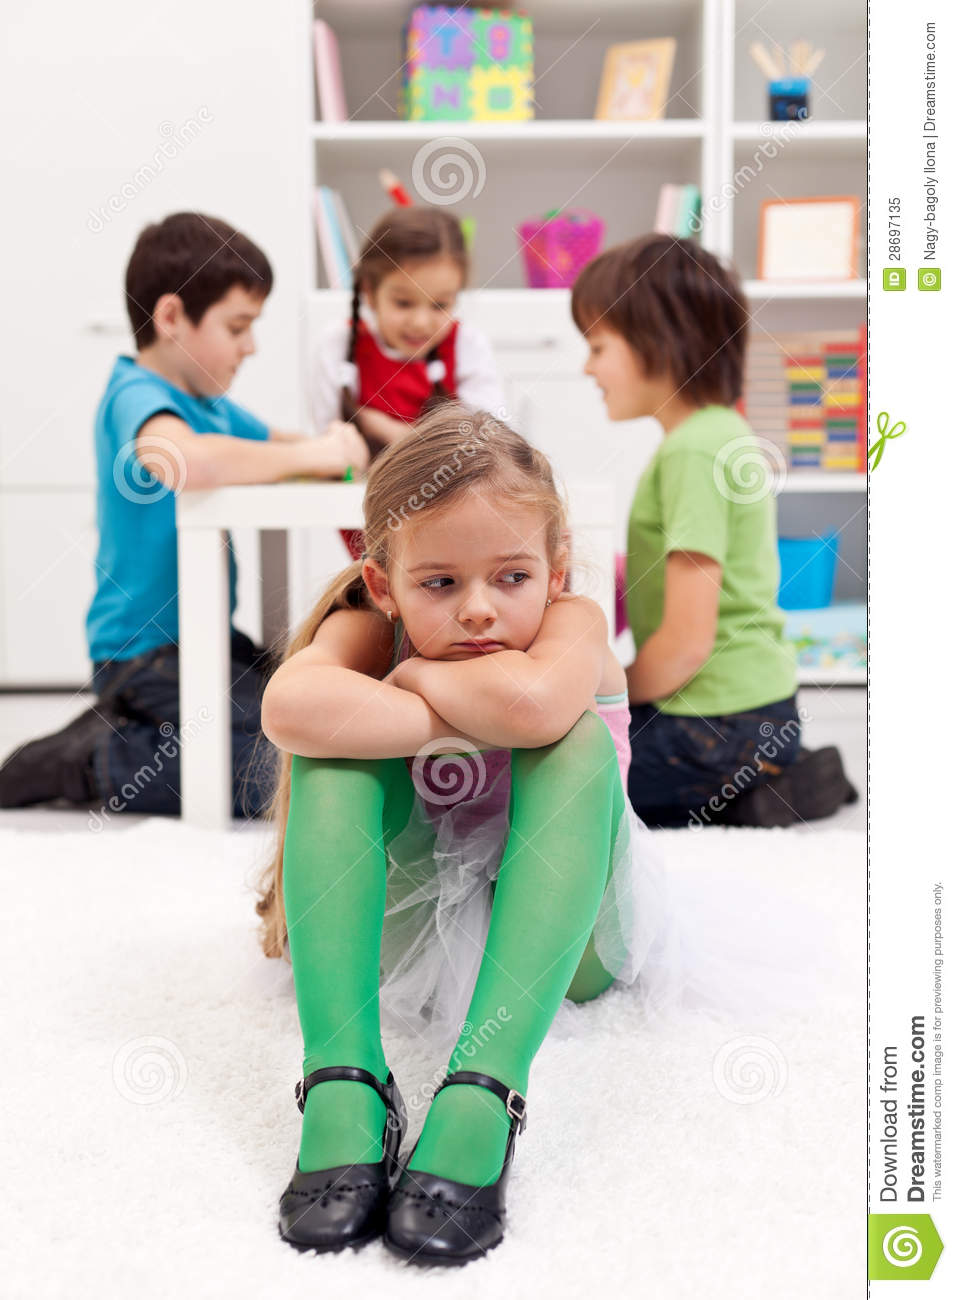 Feeling Sad Girl Wallpaper Sad Little Girl Sitting Excluded By Friends Stock Image